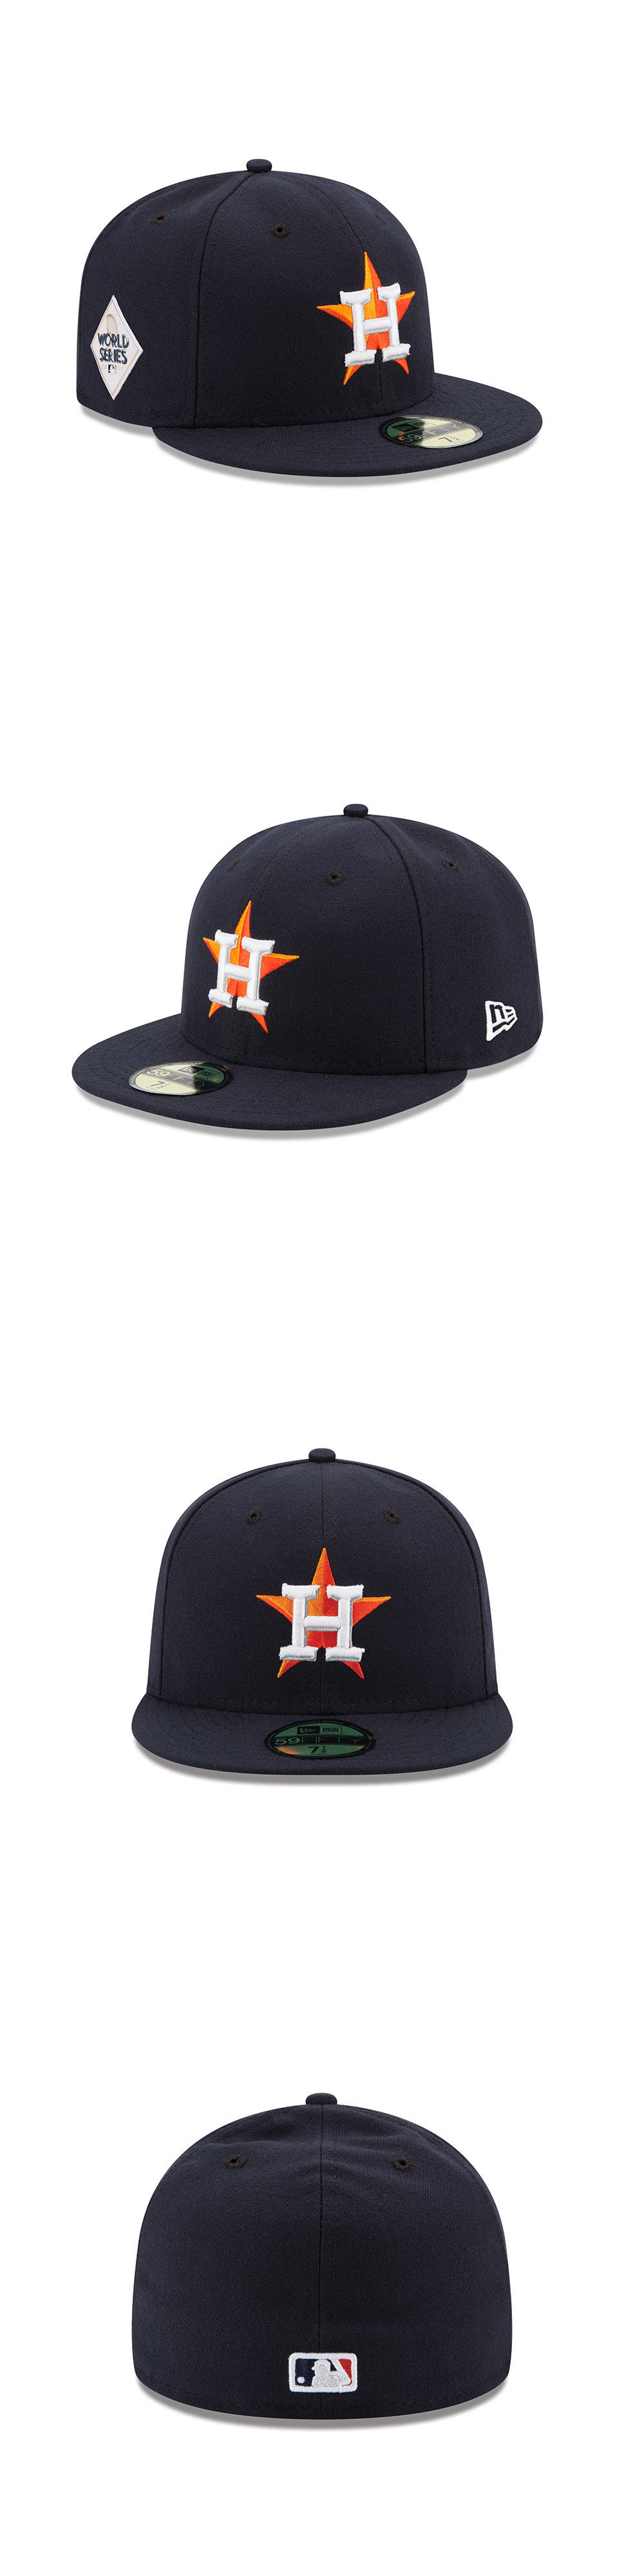 super popular d9423 5fbd7 ... order sports memorabilia houston astros new era 2017 world series side  patch 59fifty fitted hat a184c